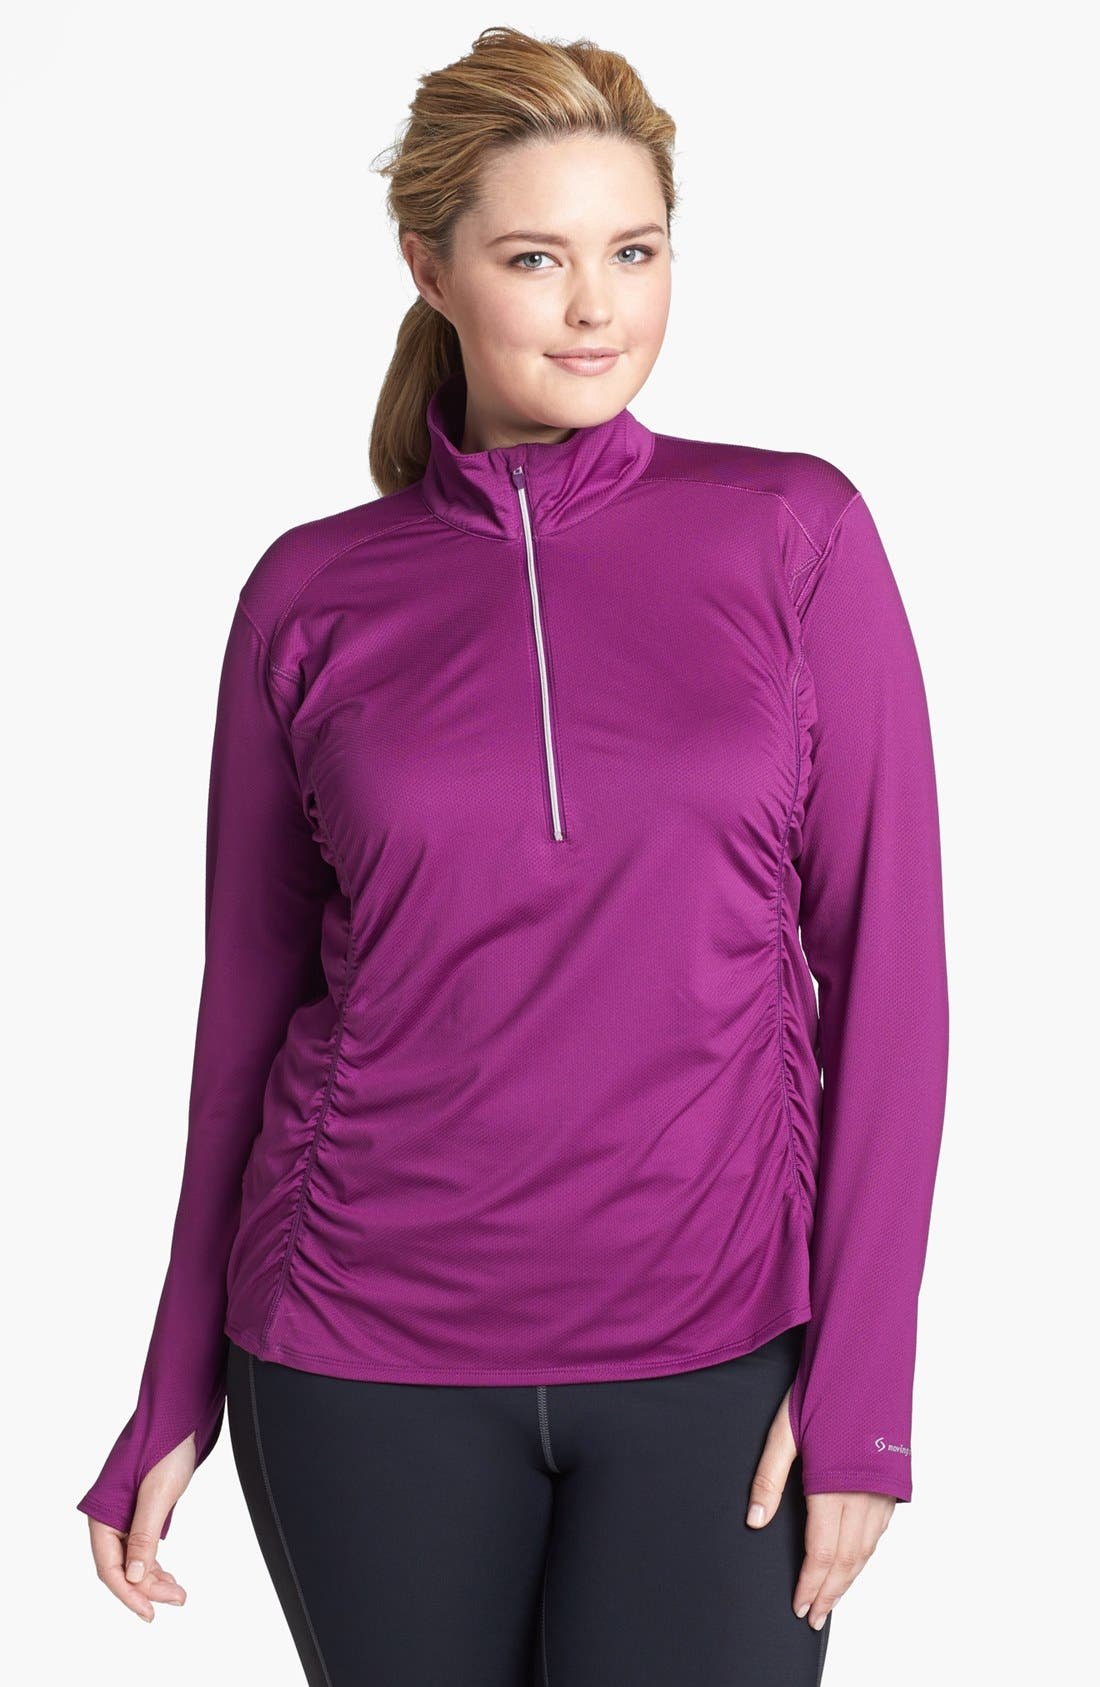 Alternate Image 1 Selected - Moving Comfort 'Sprint' Half Zip Pullover (Plus Size)